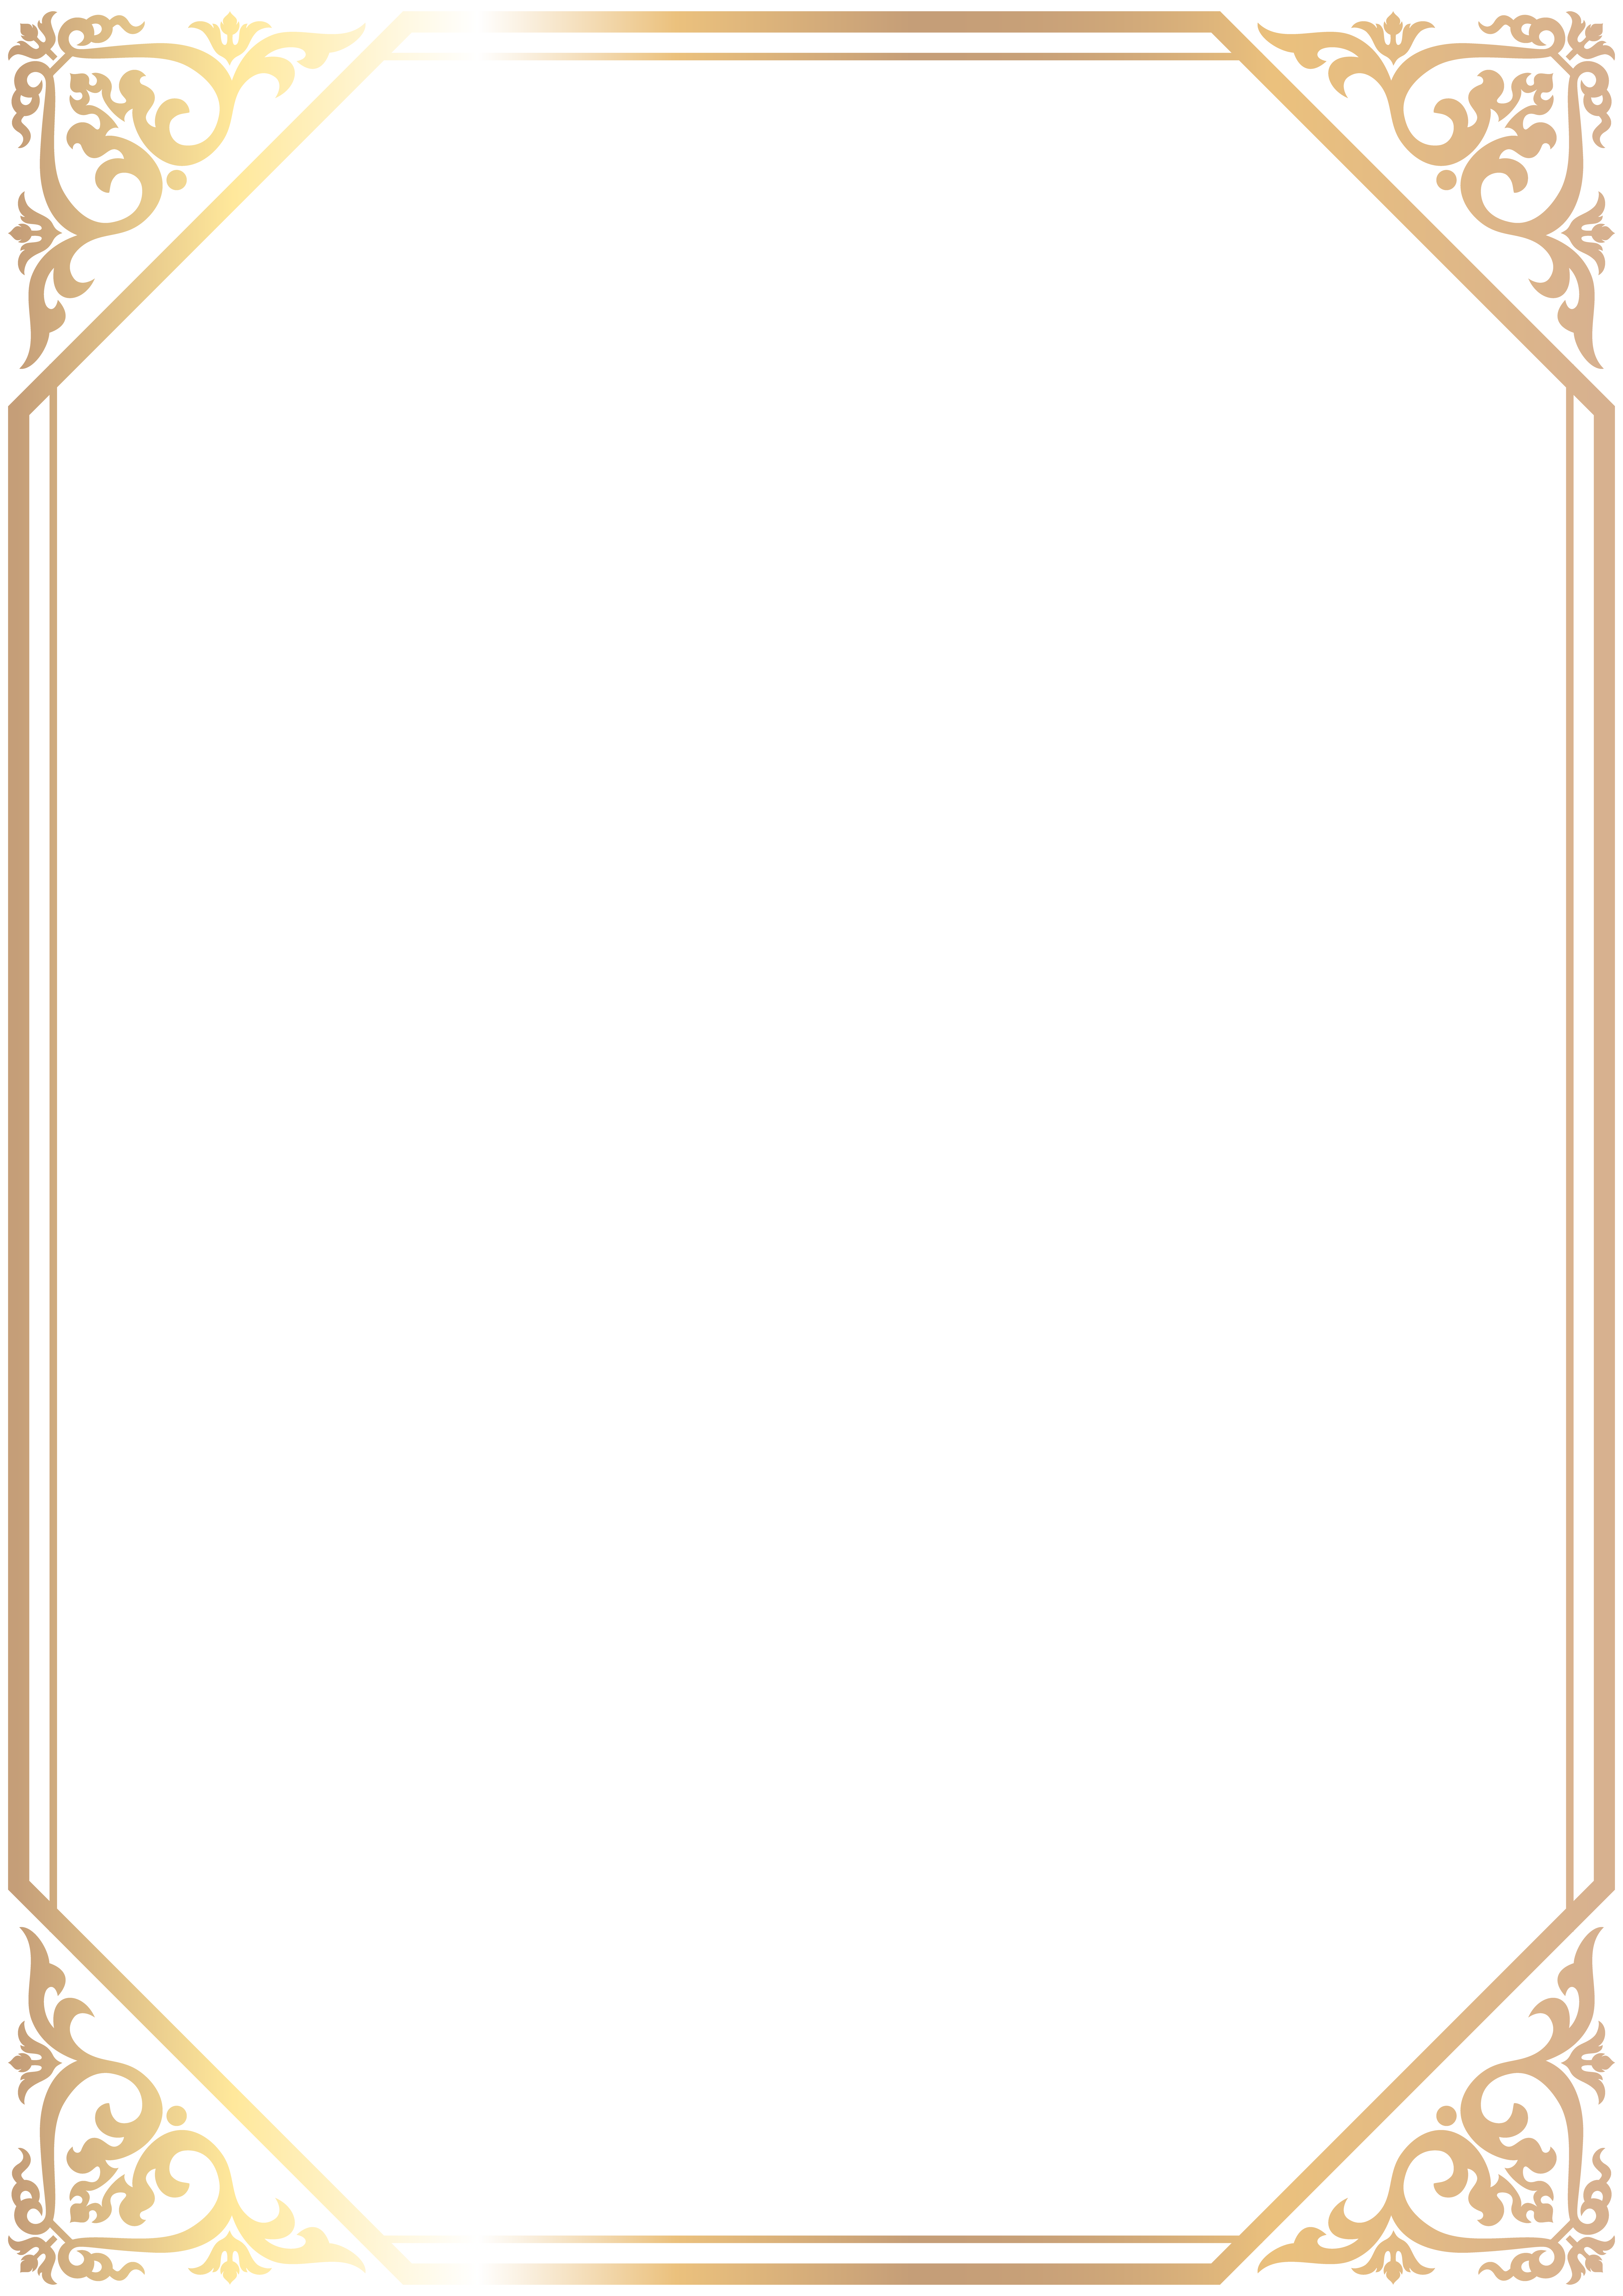 Border Frame High Quality PNG